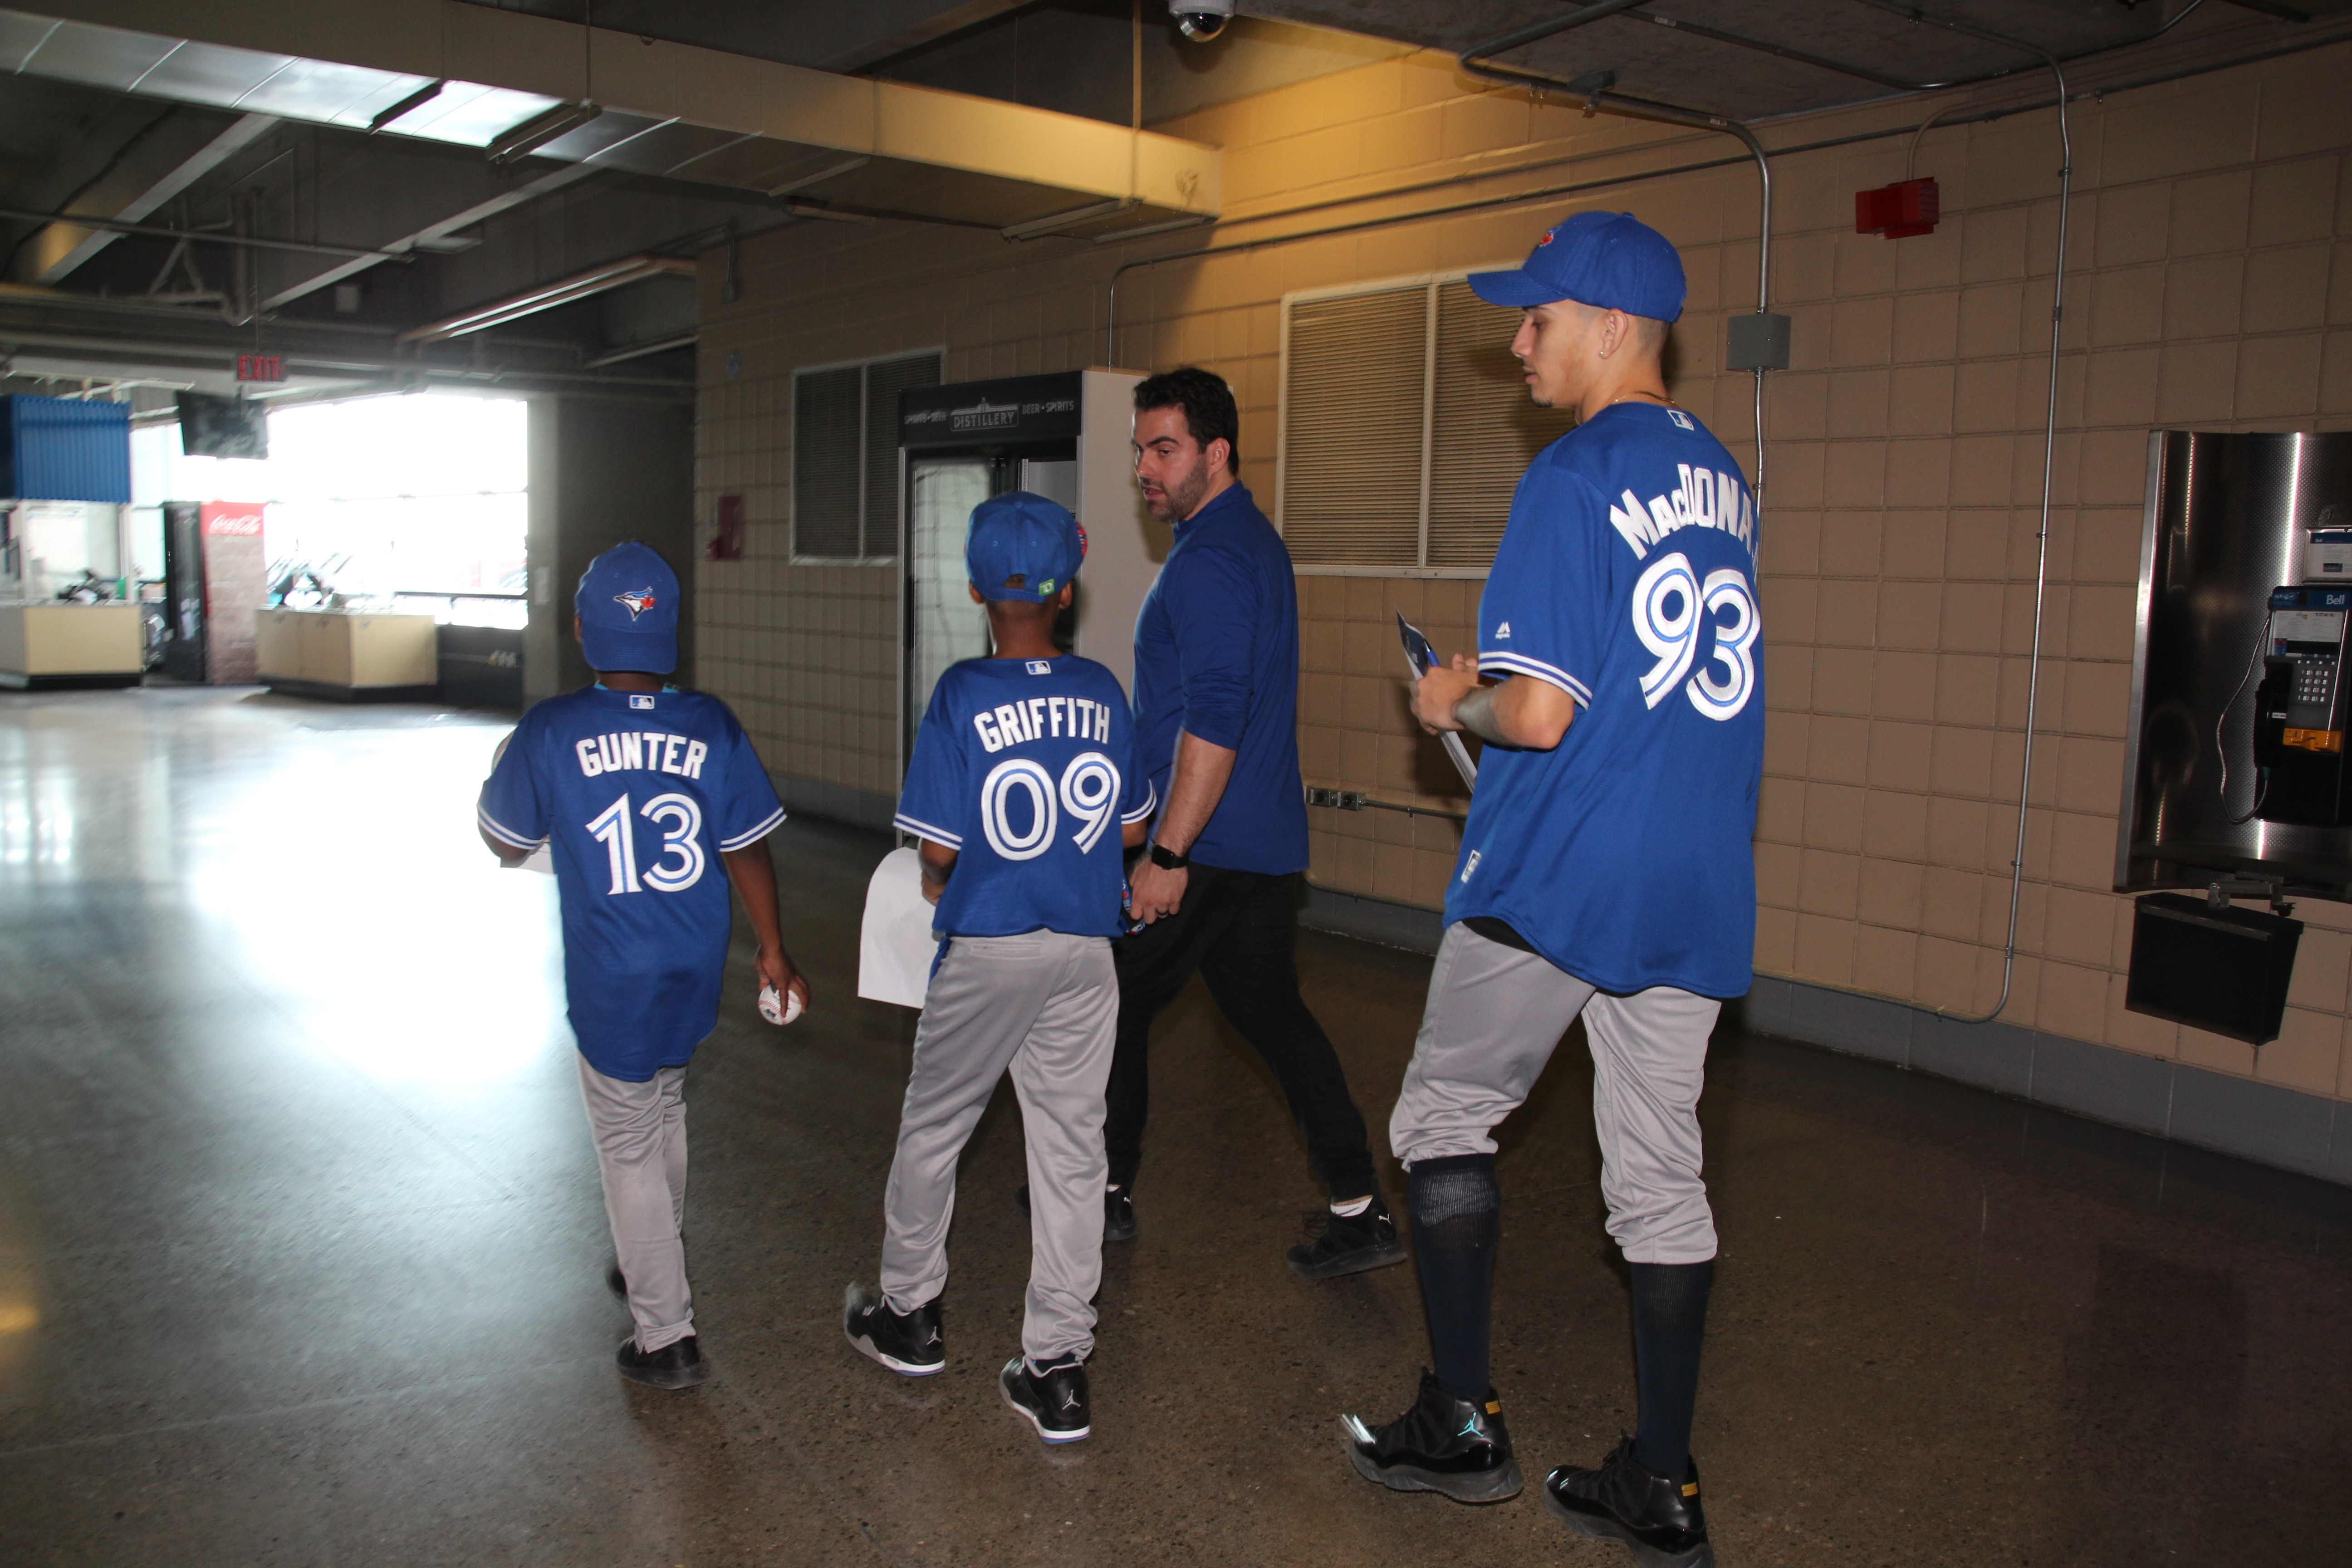 Jays Care staff member giving a group of Unstoppable Kids a tour of the Rogers Centre.